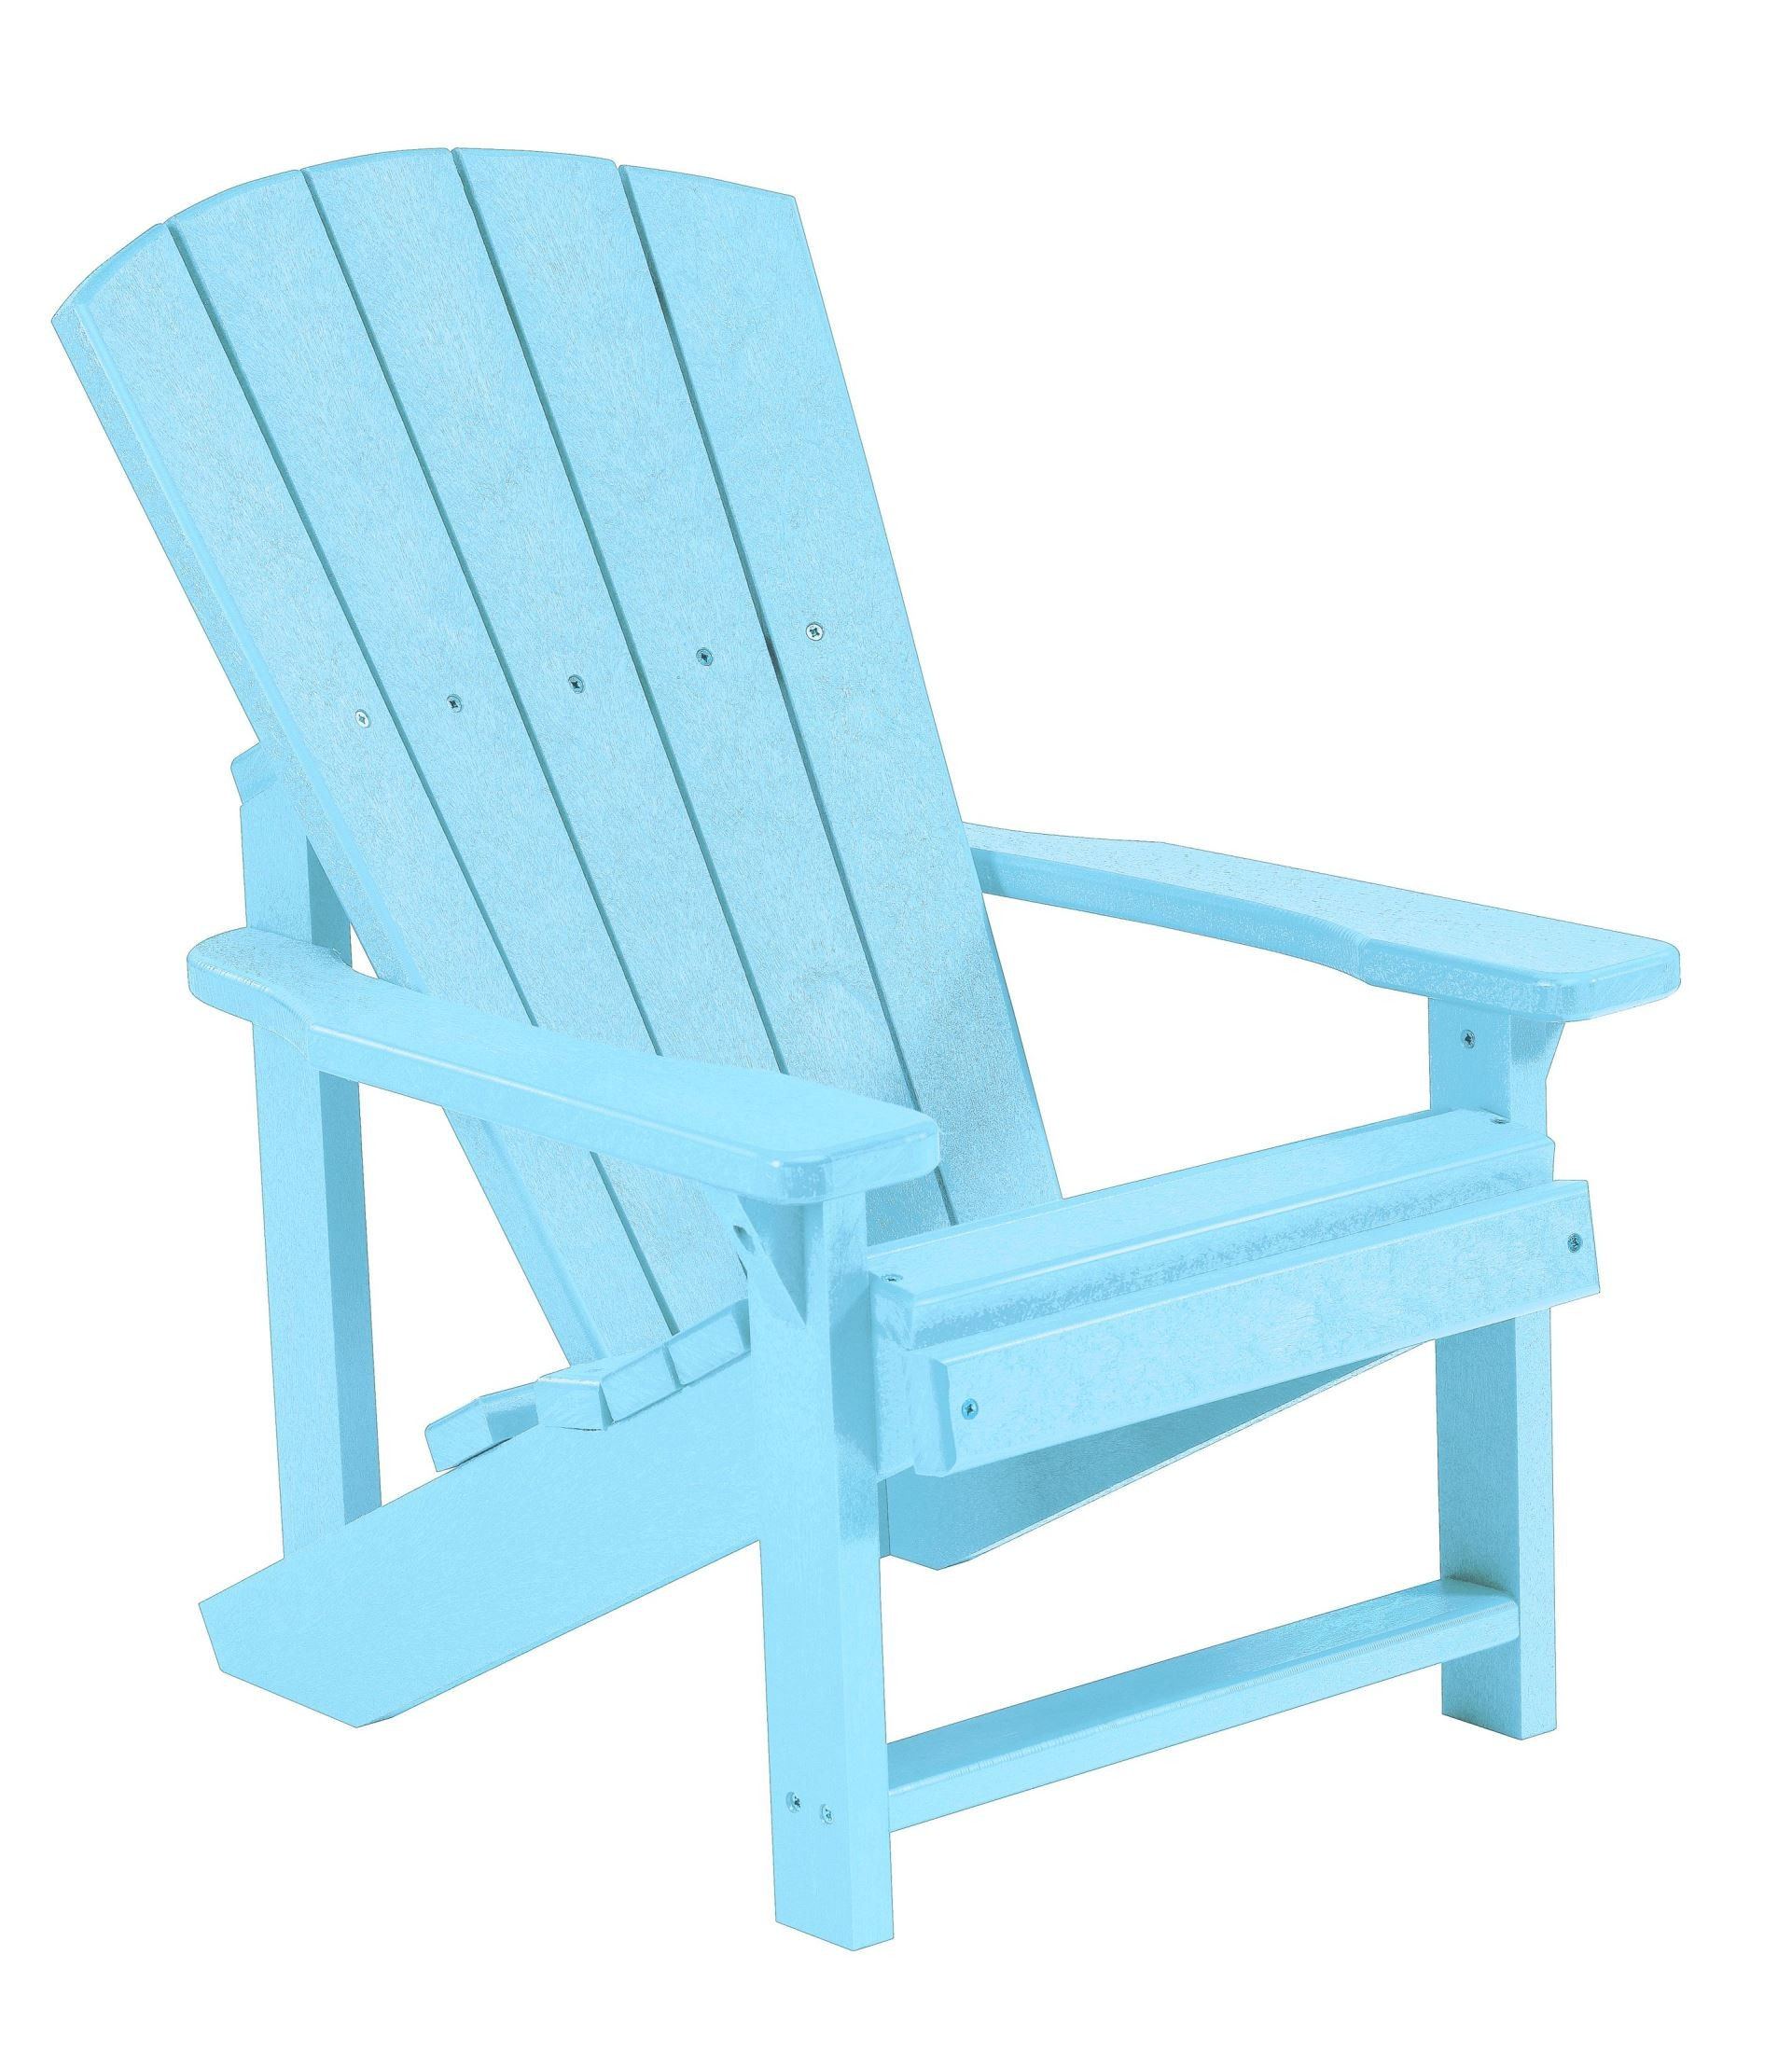 Generations Aqua Kids Adirondack Chair From Cr Plastic